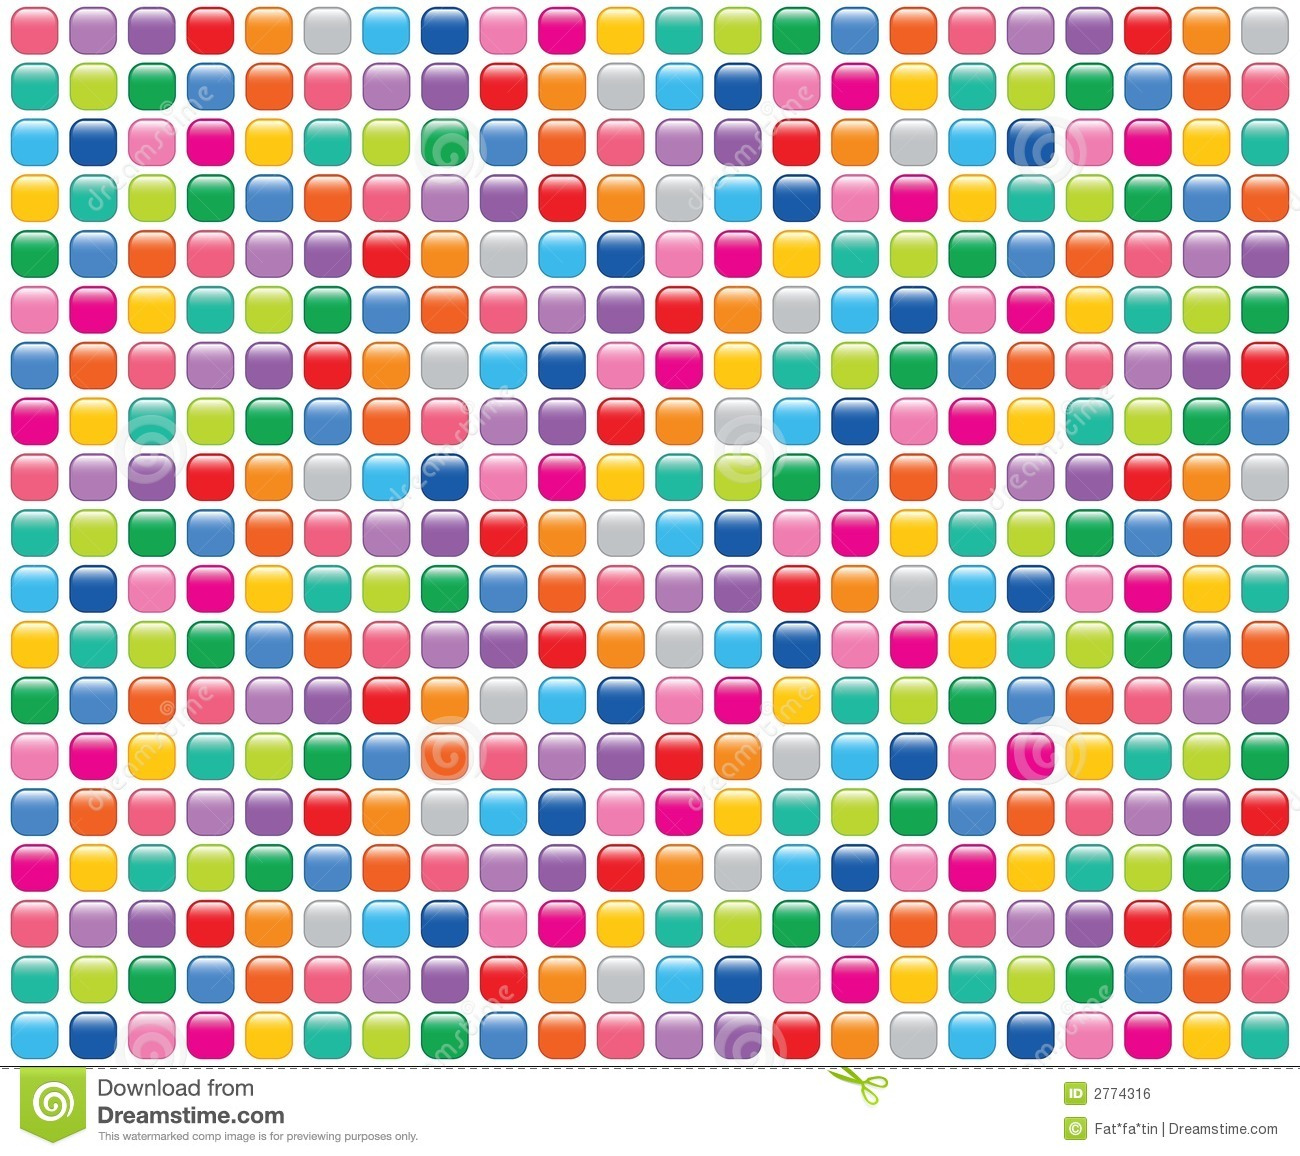 Rainbow mosaic buttons white royalty free stock image - Mosaicos de colores ...